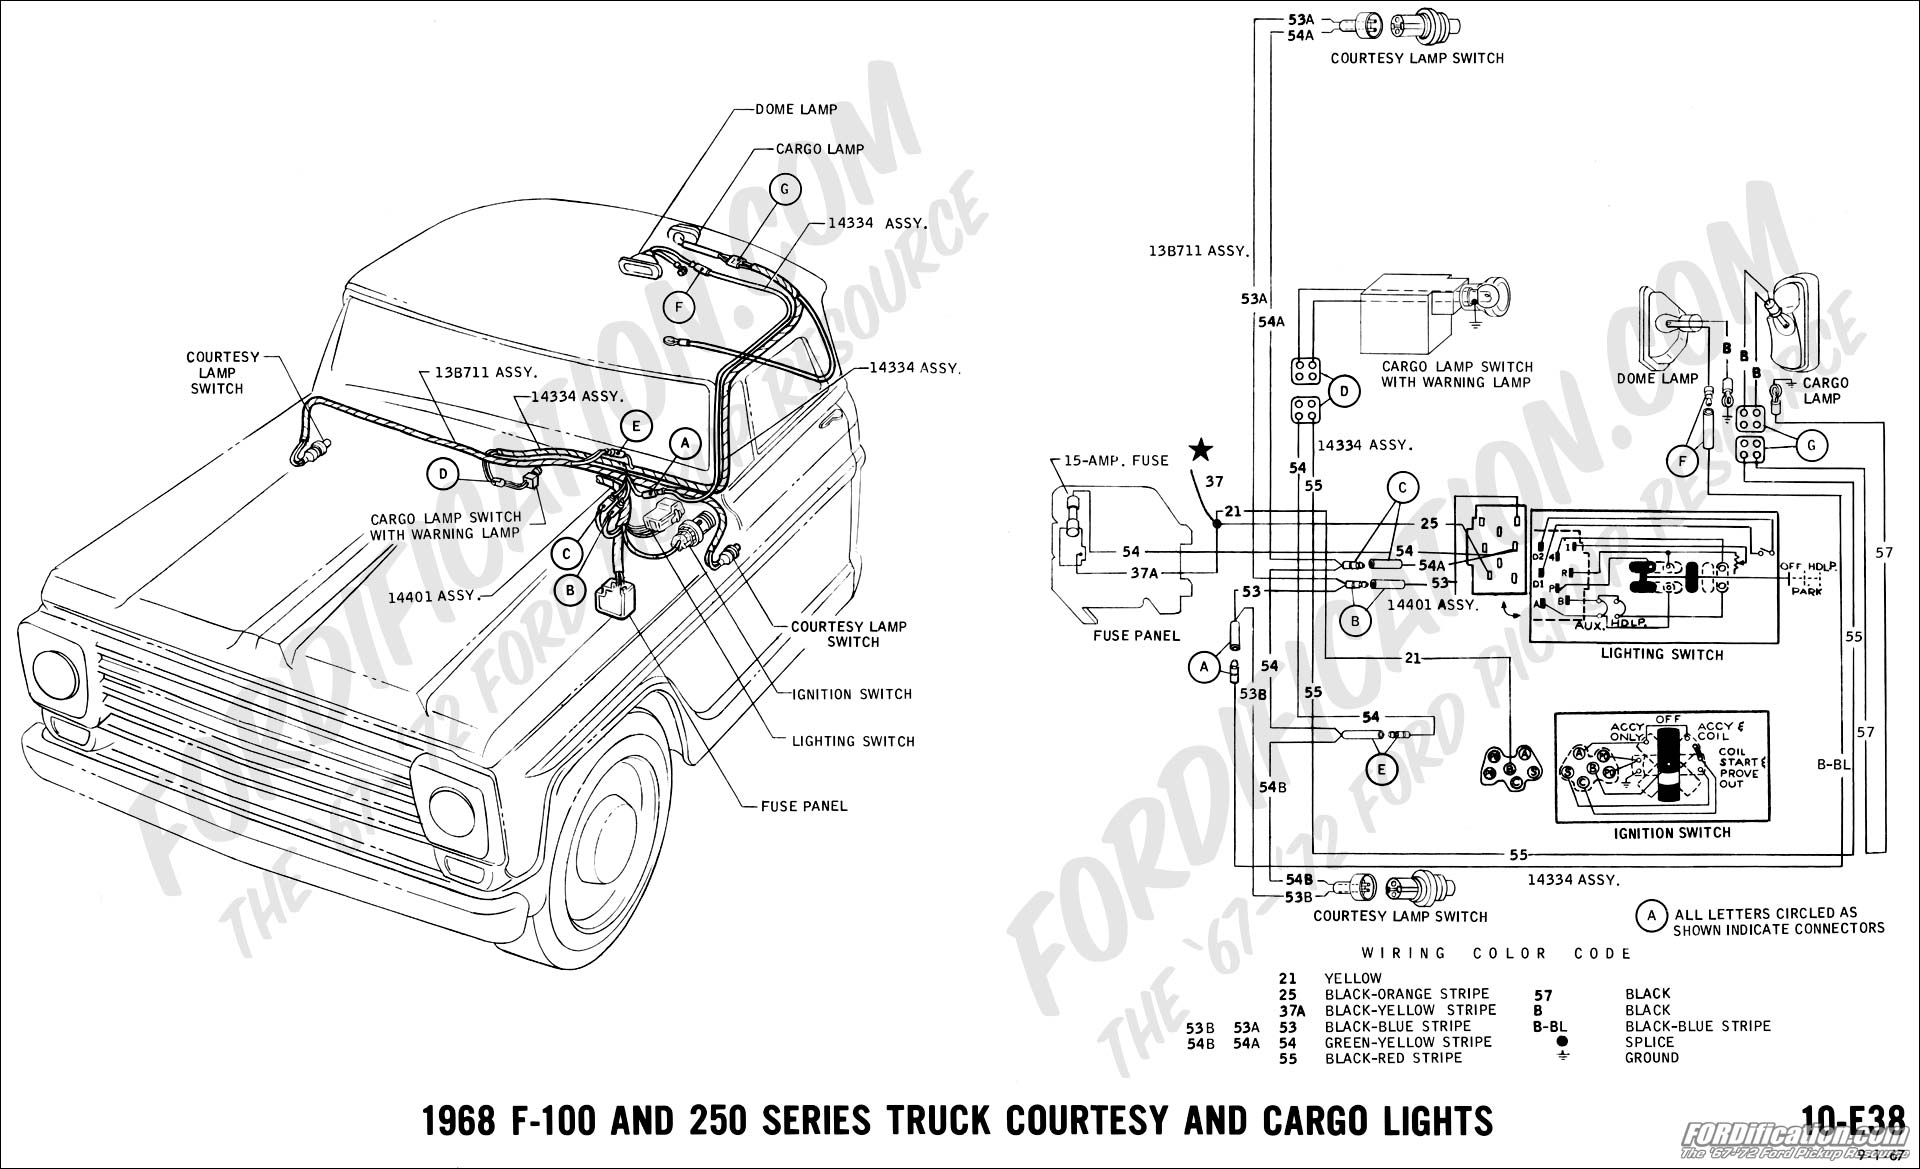 1972 Ford F 250 Wiring Harness Diagram Content Resource Of 87 F250 Truck Technical Drawings And Schematics Section H Rh Fordification Com 2005